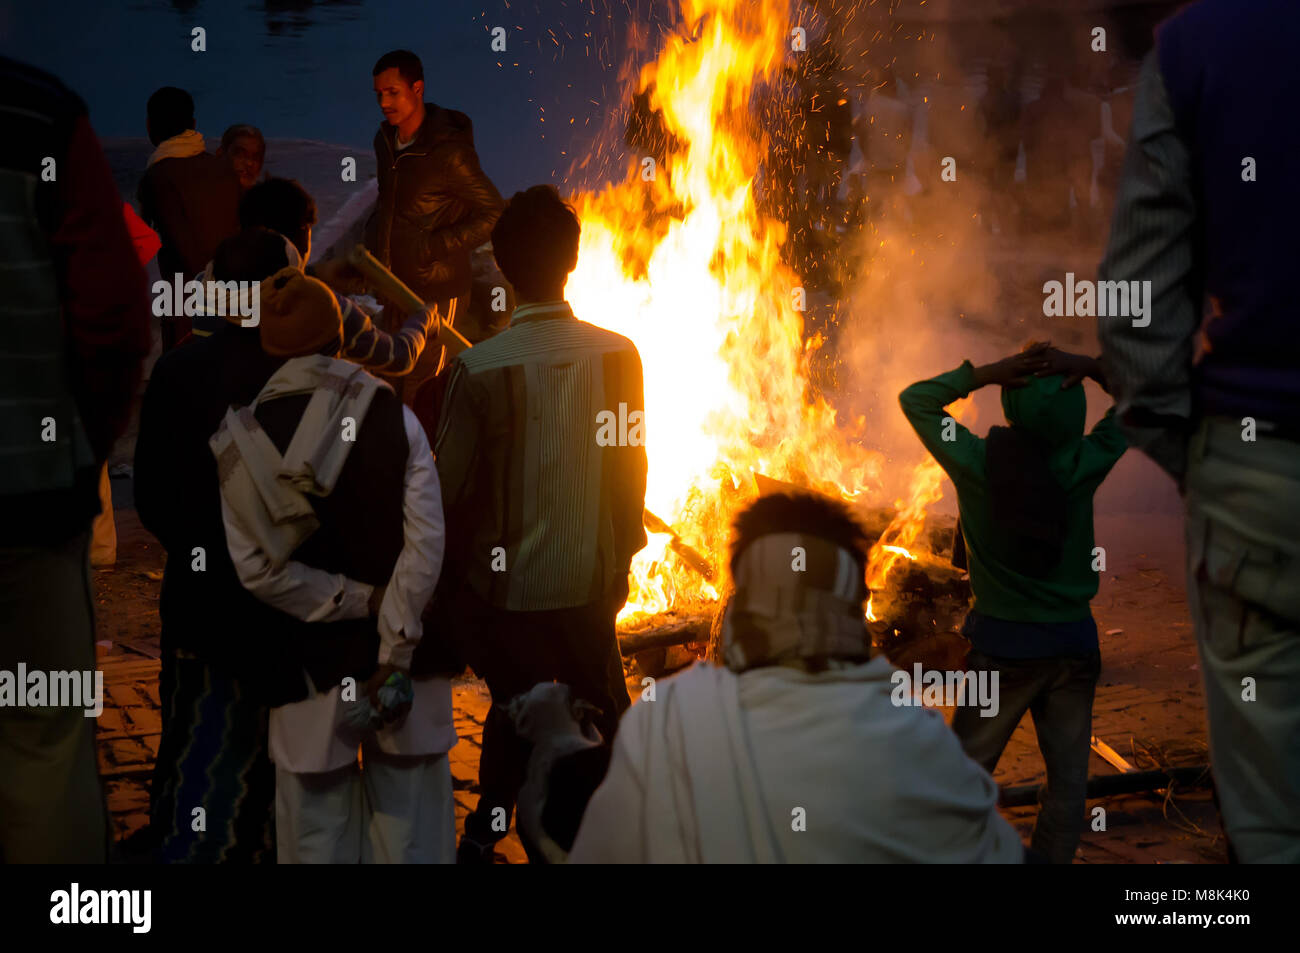 VARANASI, INDIA. February 28, 2017: People look at the funeral pyre that night. The ceremony of the cremation of - Stock Image